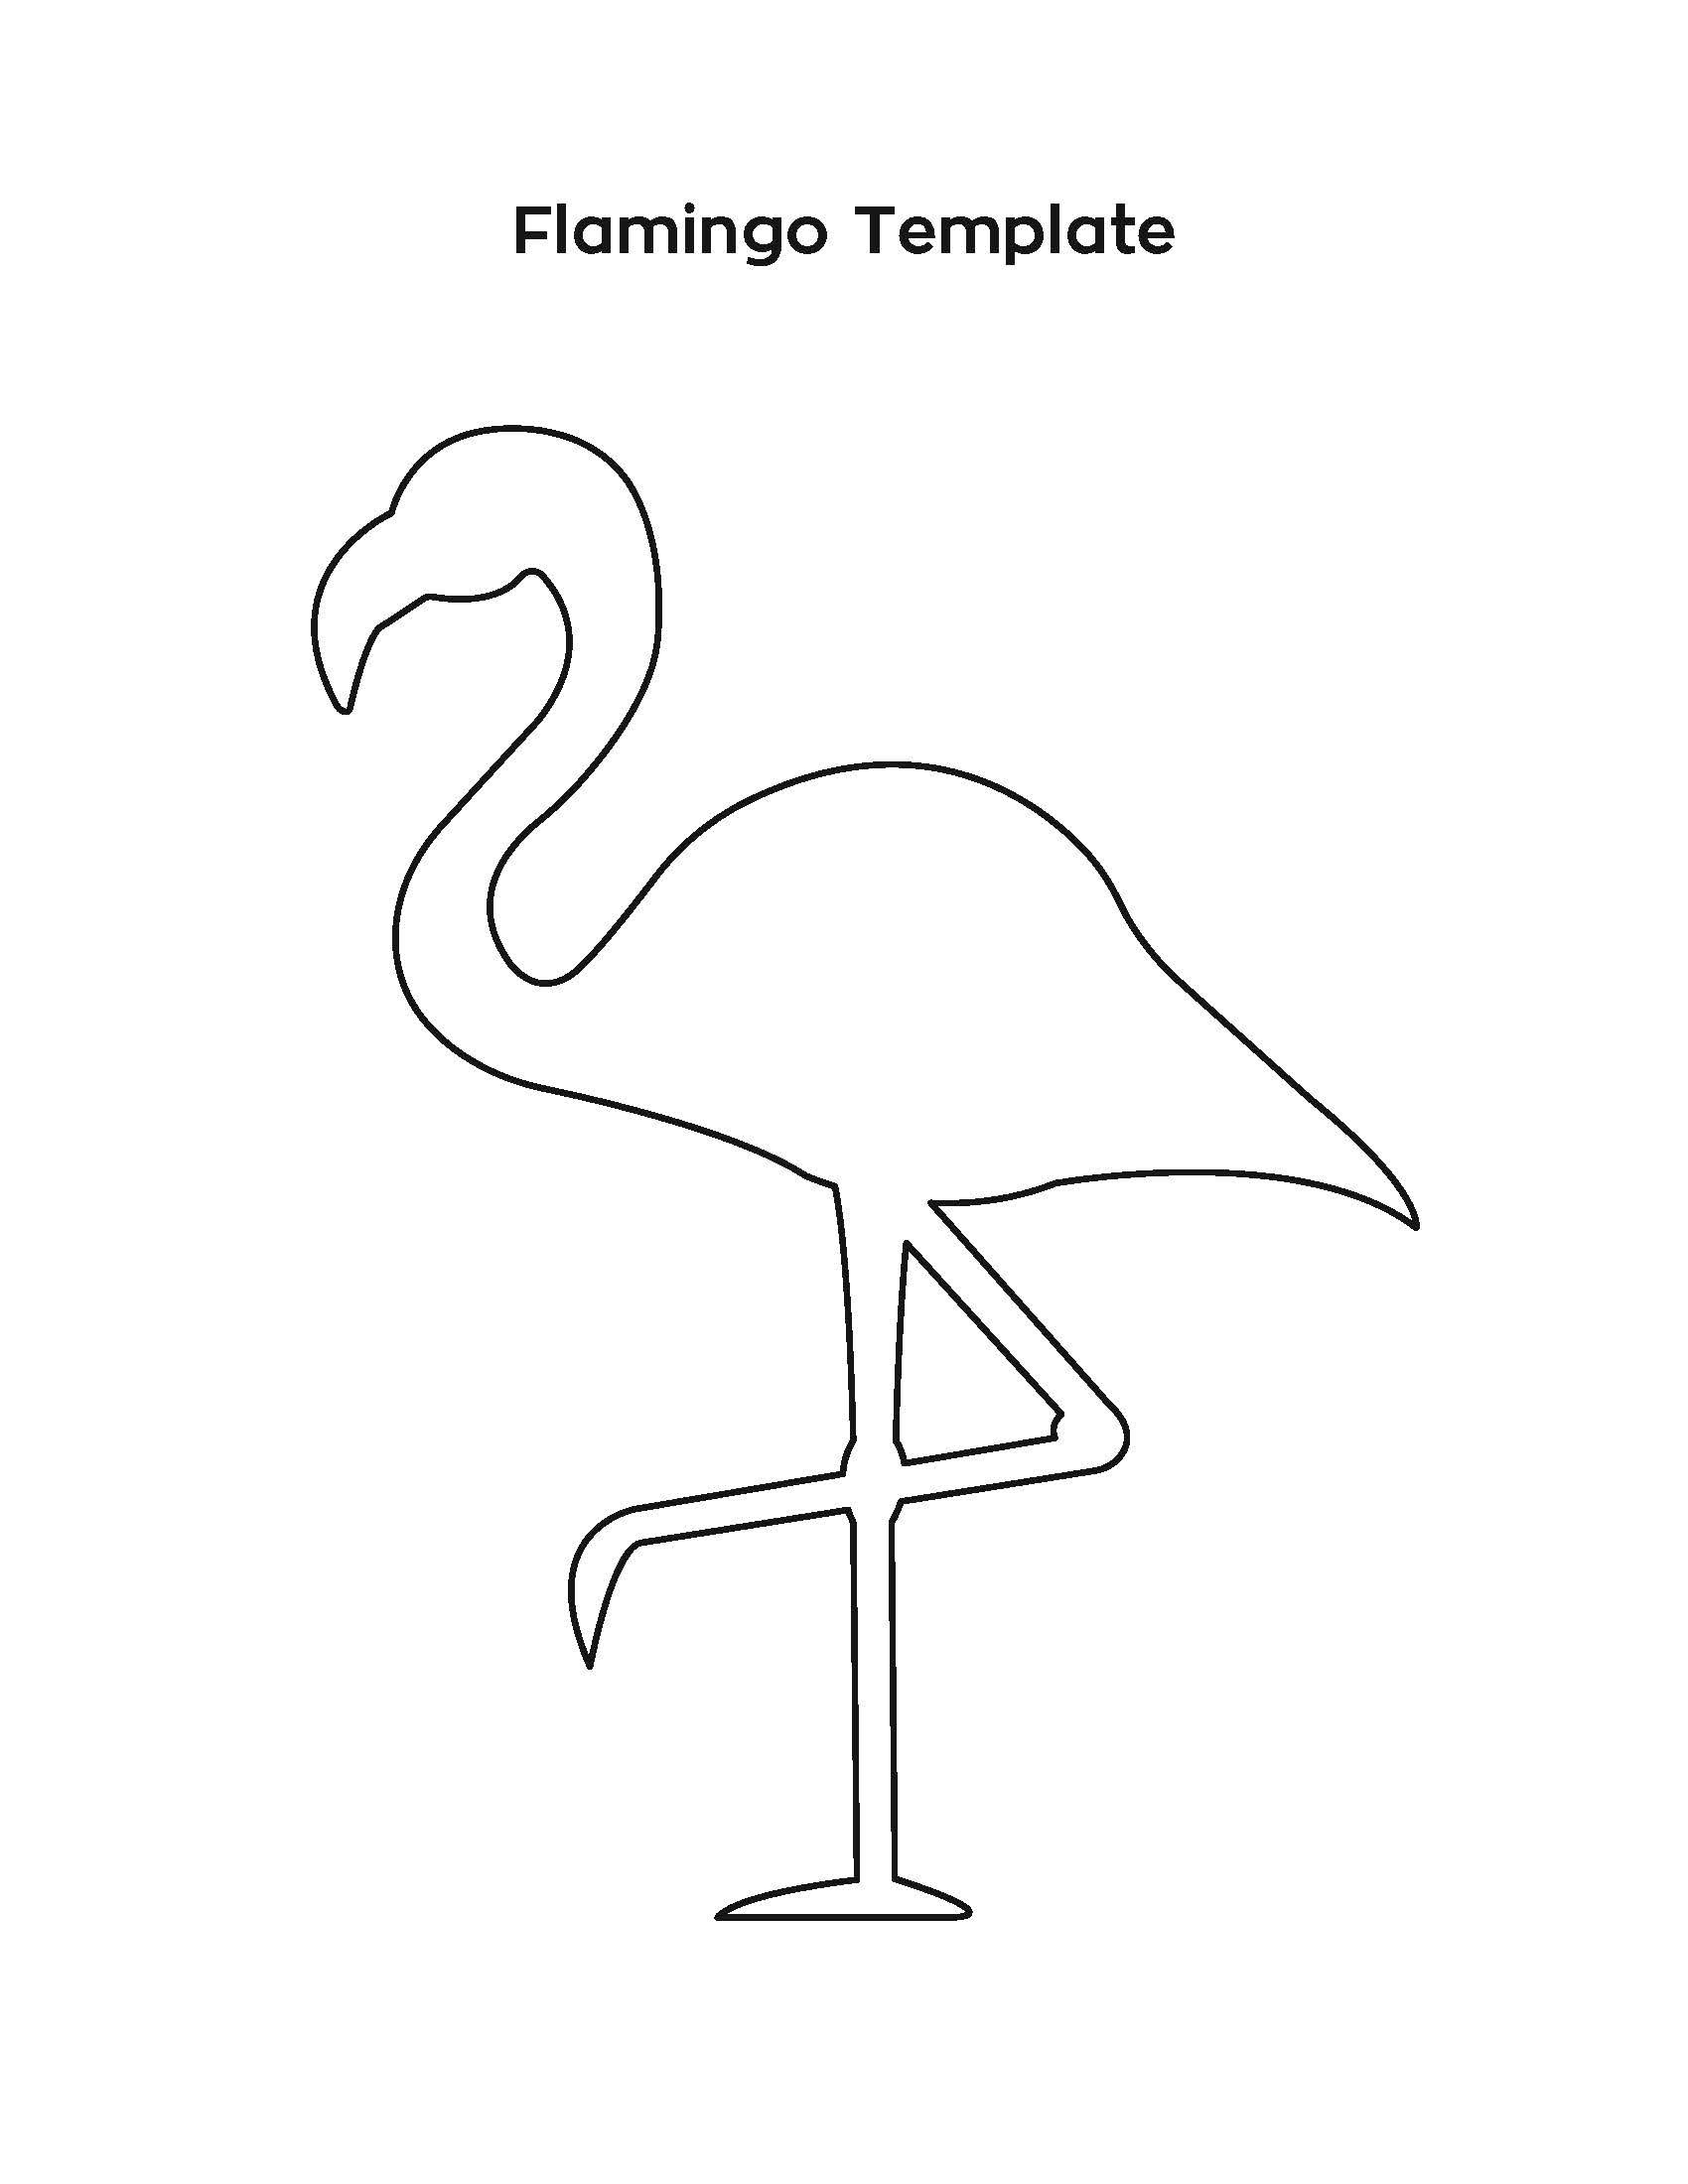 Flamingo Stencil Outline